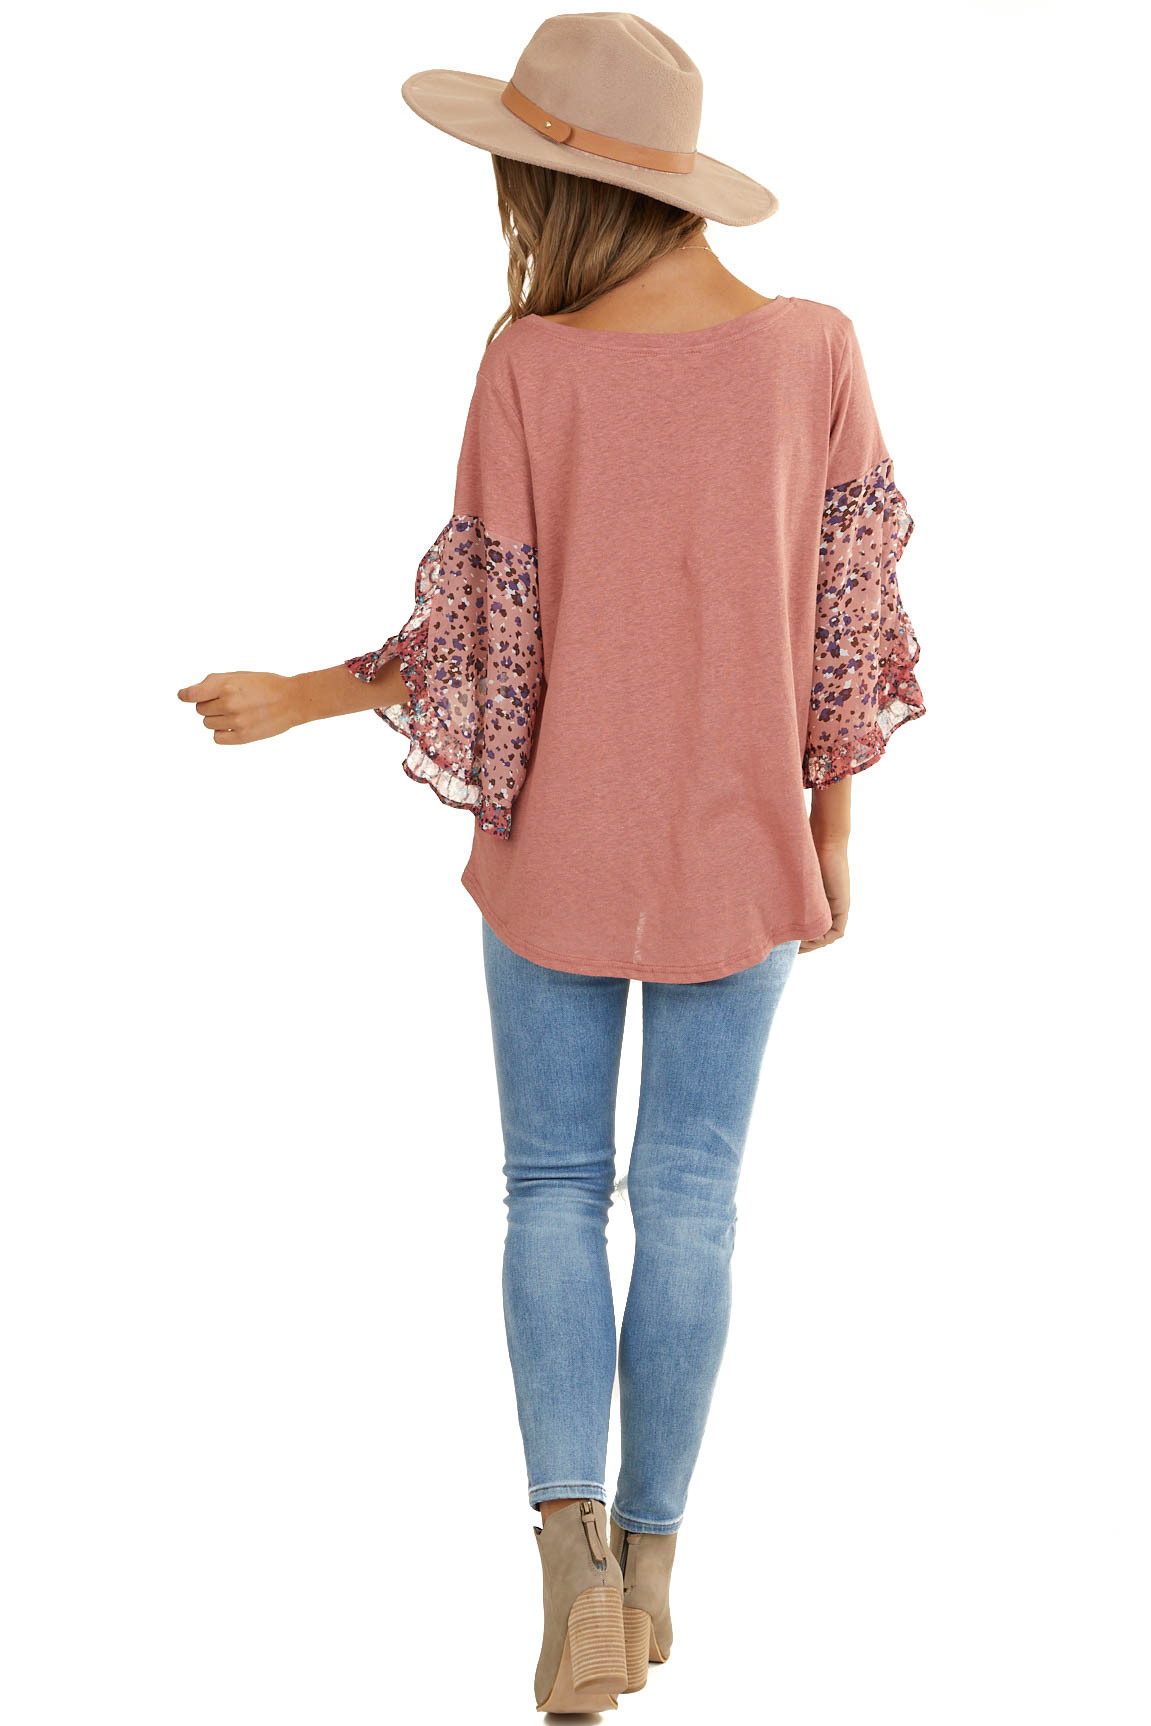 Dusty Coral Knit Top with Ruffled Multiprint Sleeves